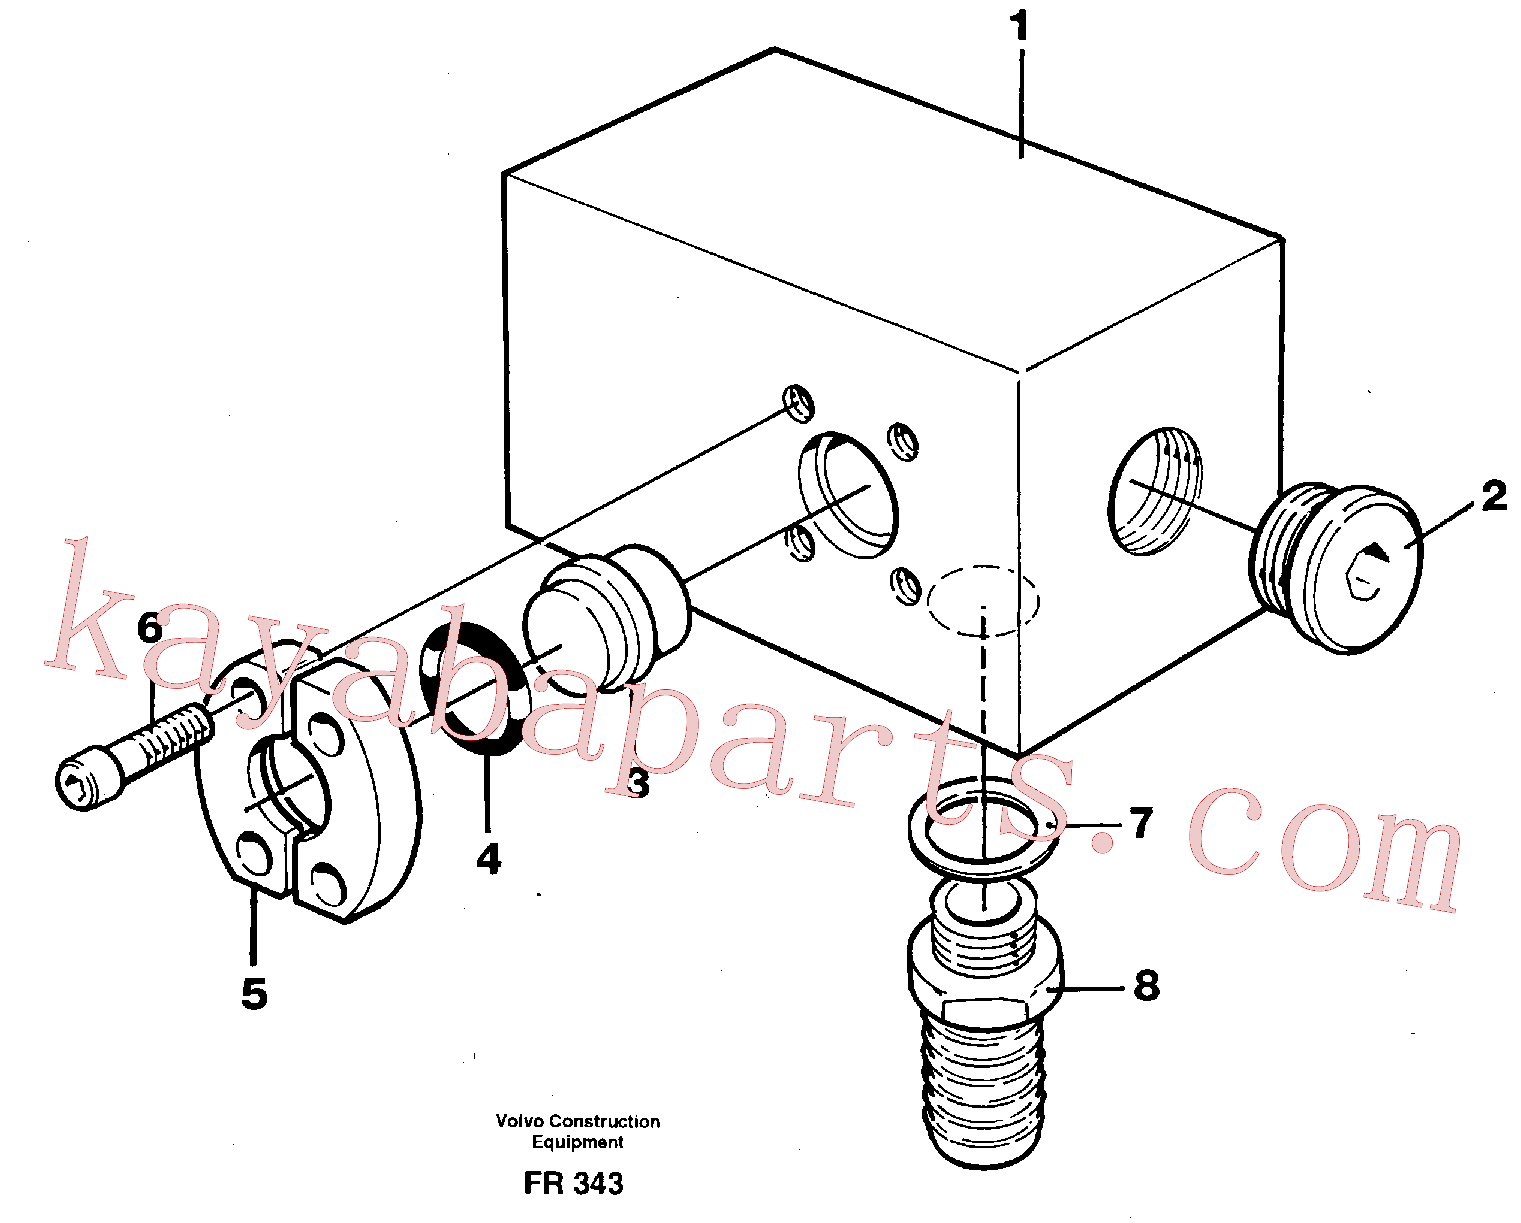 VOE14340499 for Volvo Adapter(FR343 assembly)